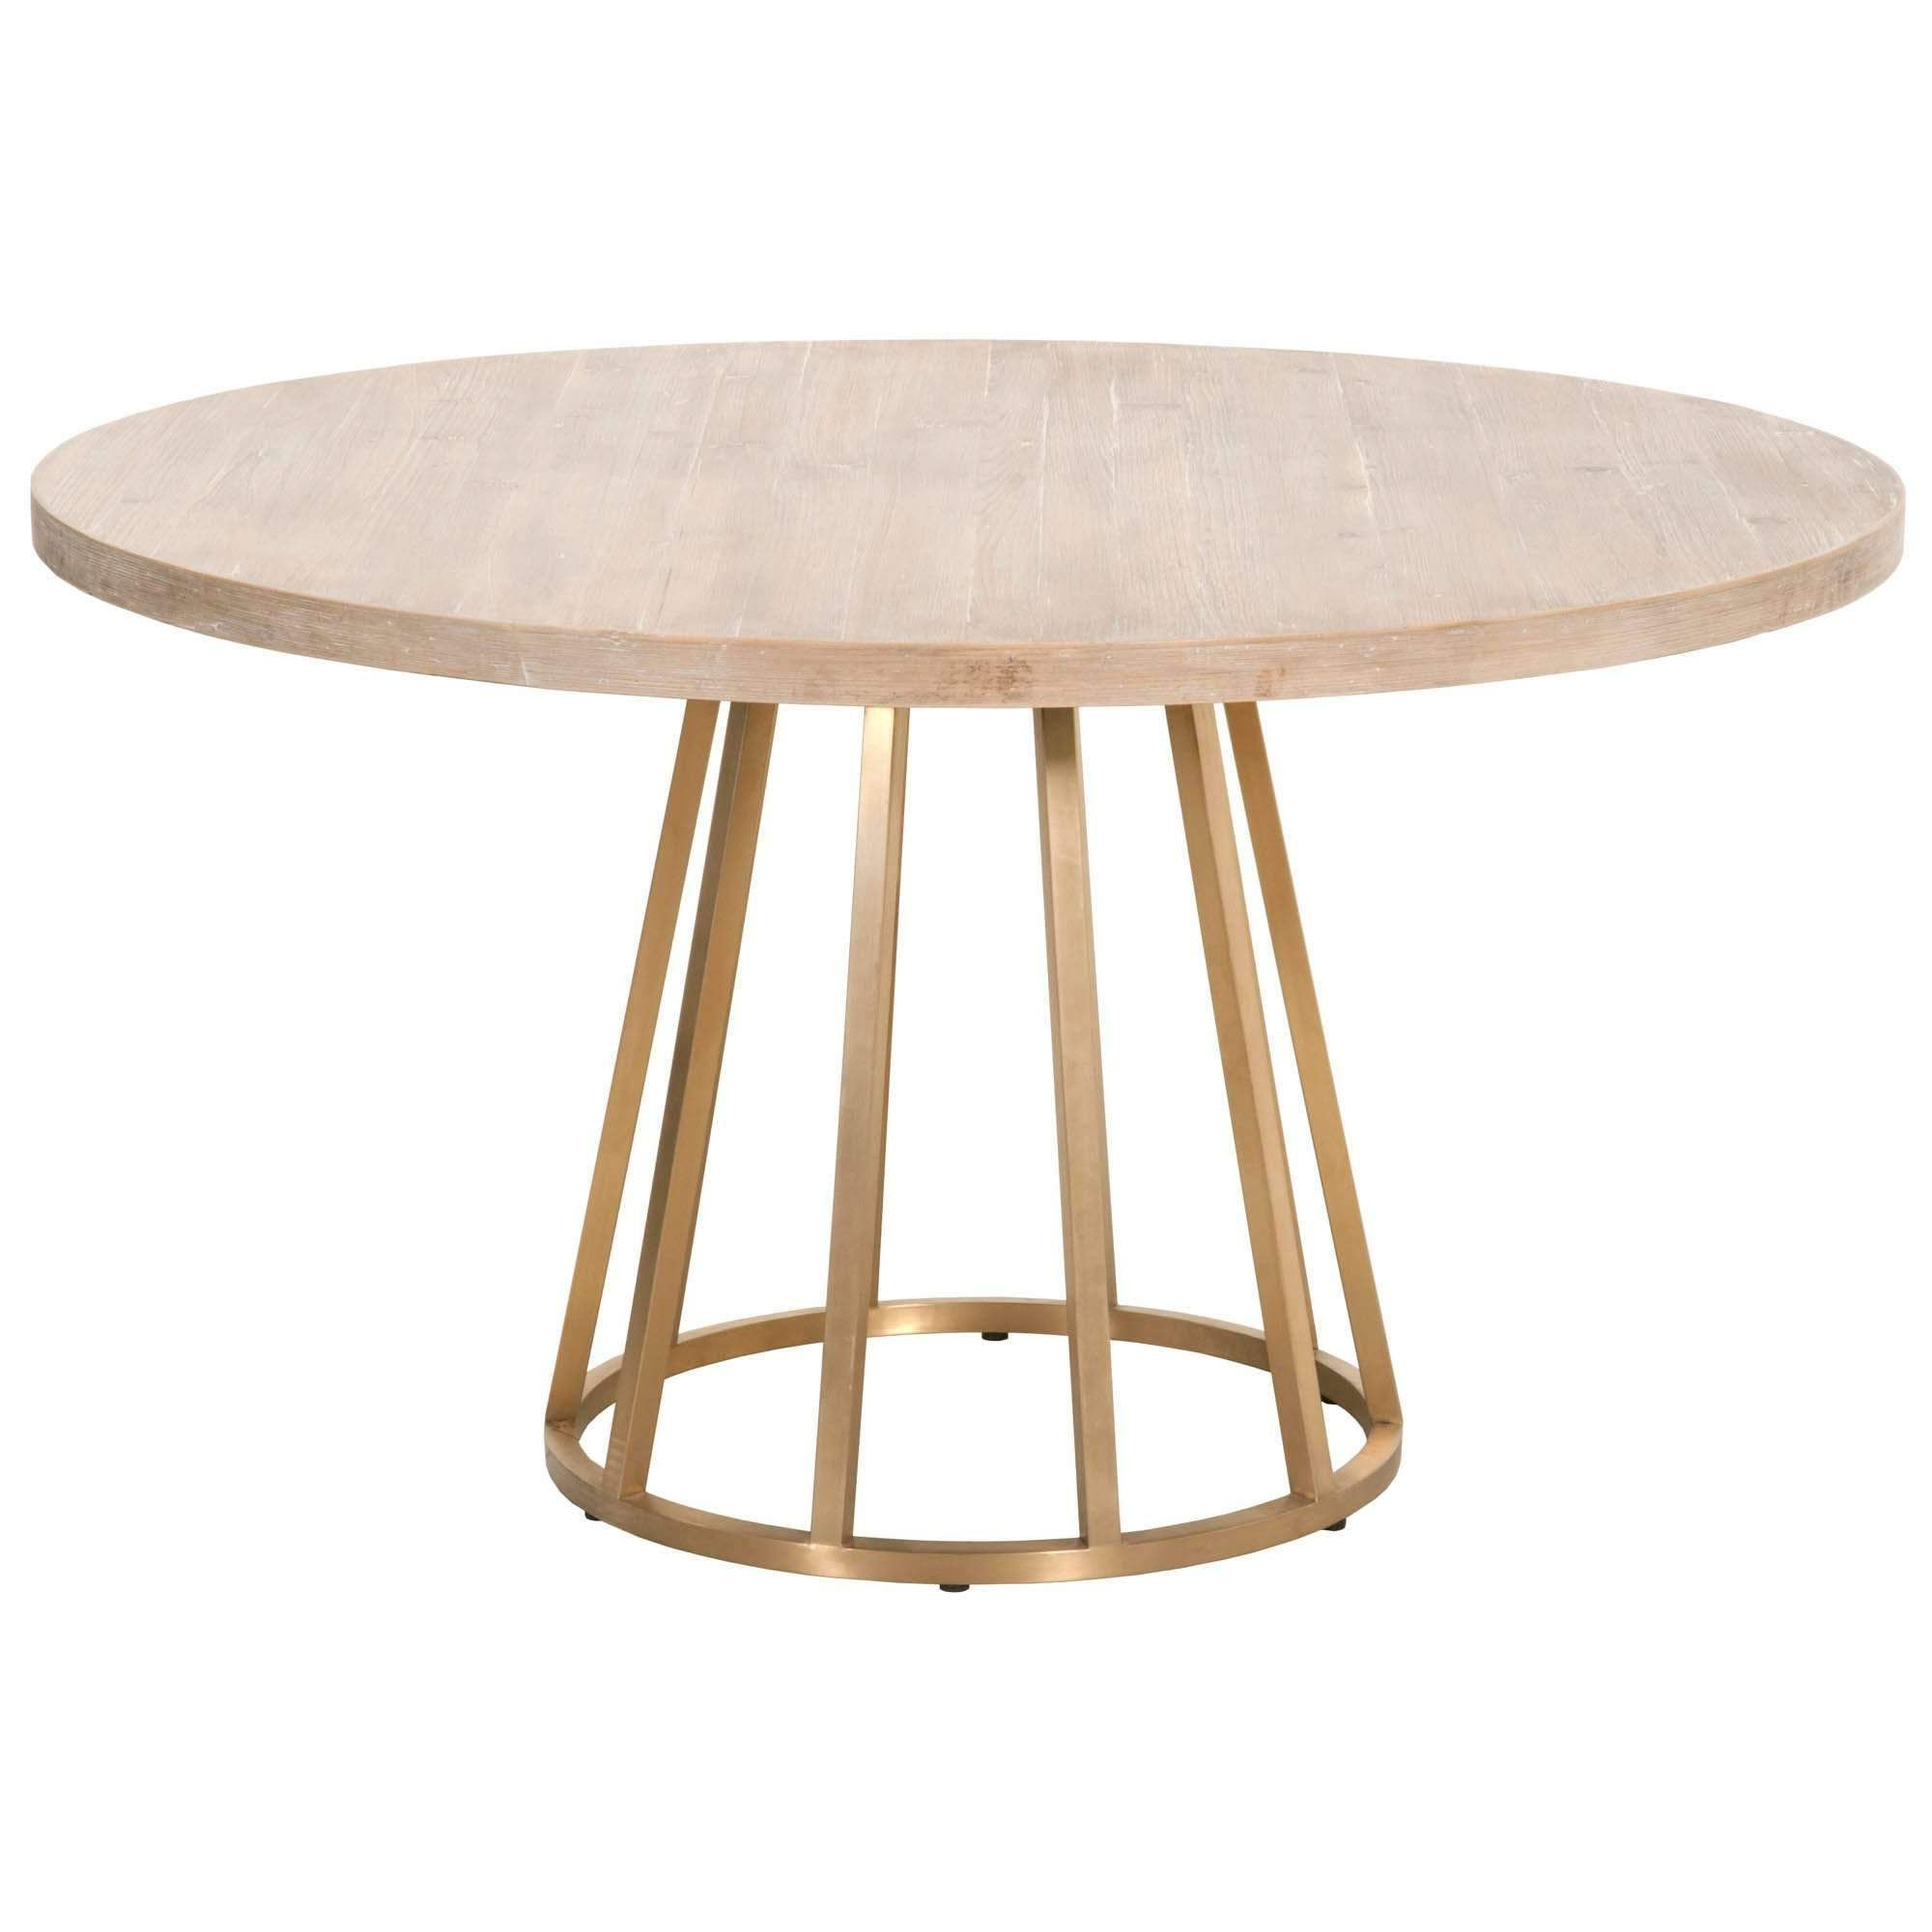 Pin By Syifa Athiyya On Muebles Round Wood Dining Table Round Dining Table Dining Table